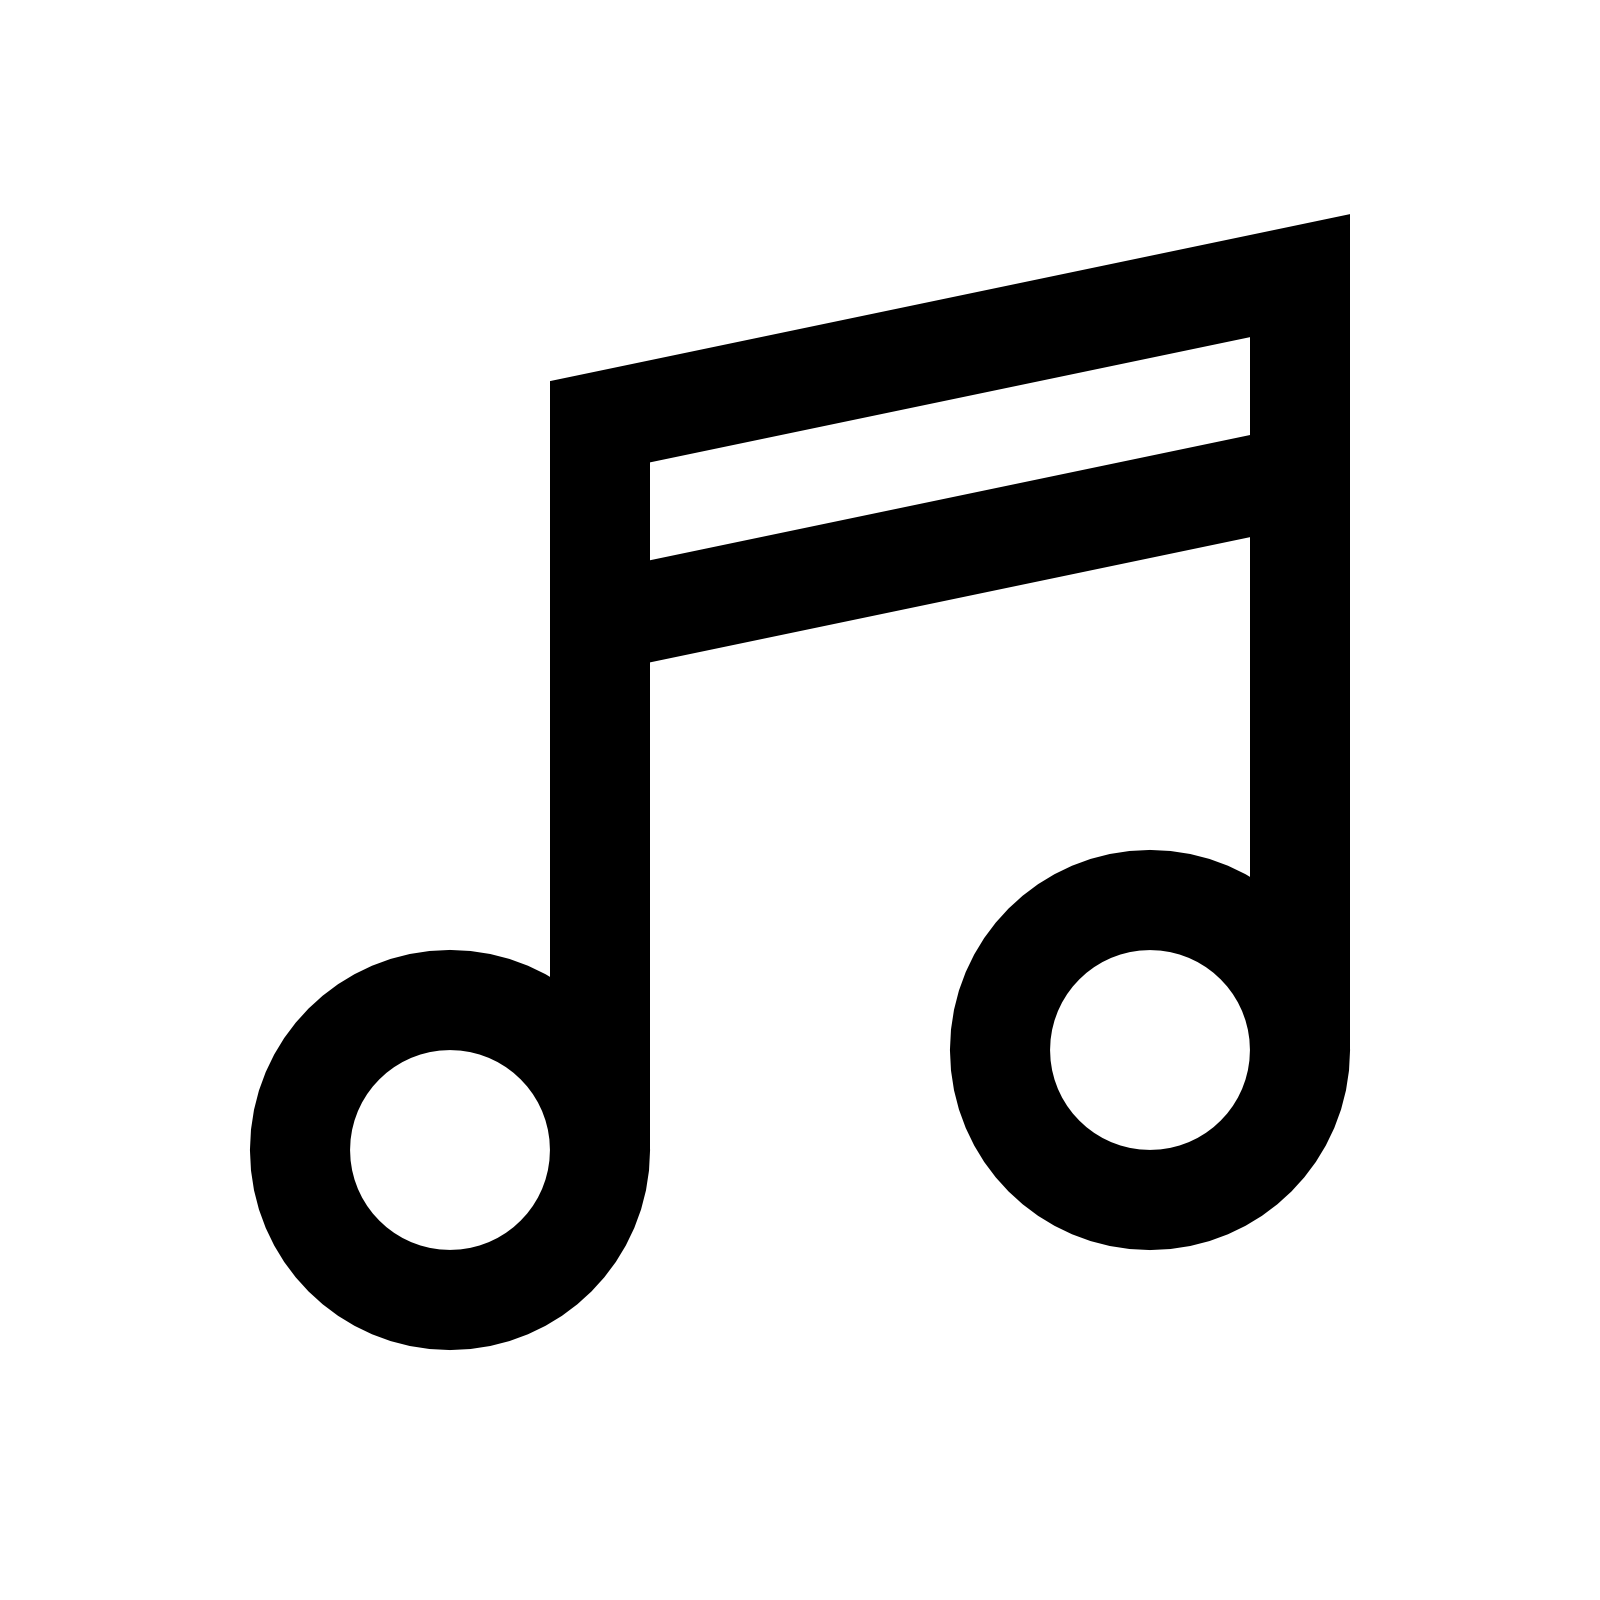 Clef Note Png Icon Clipart 3792